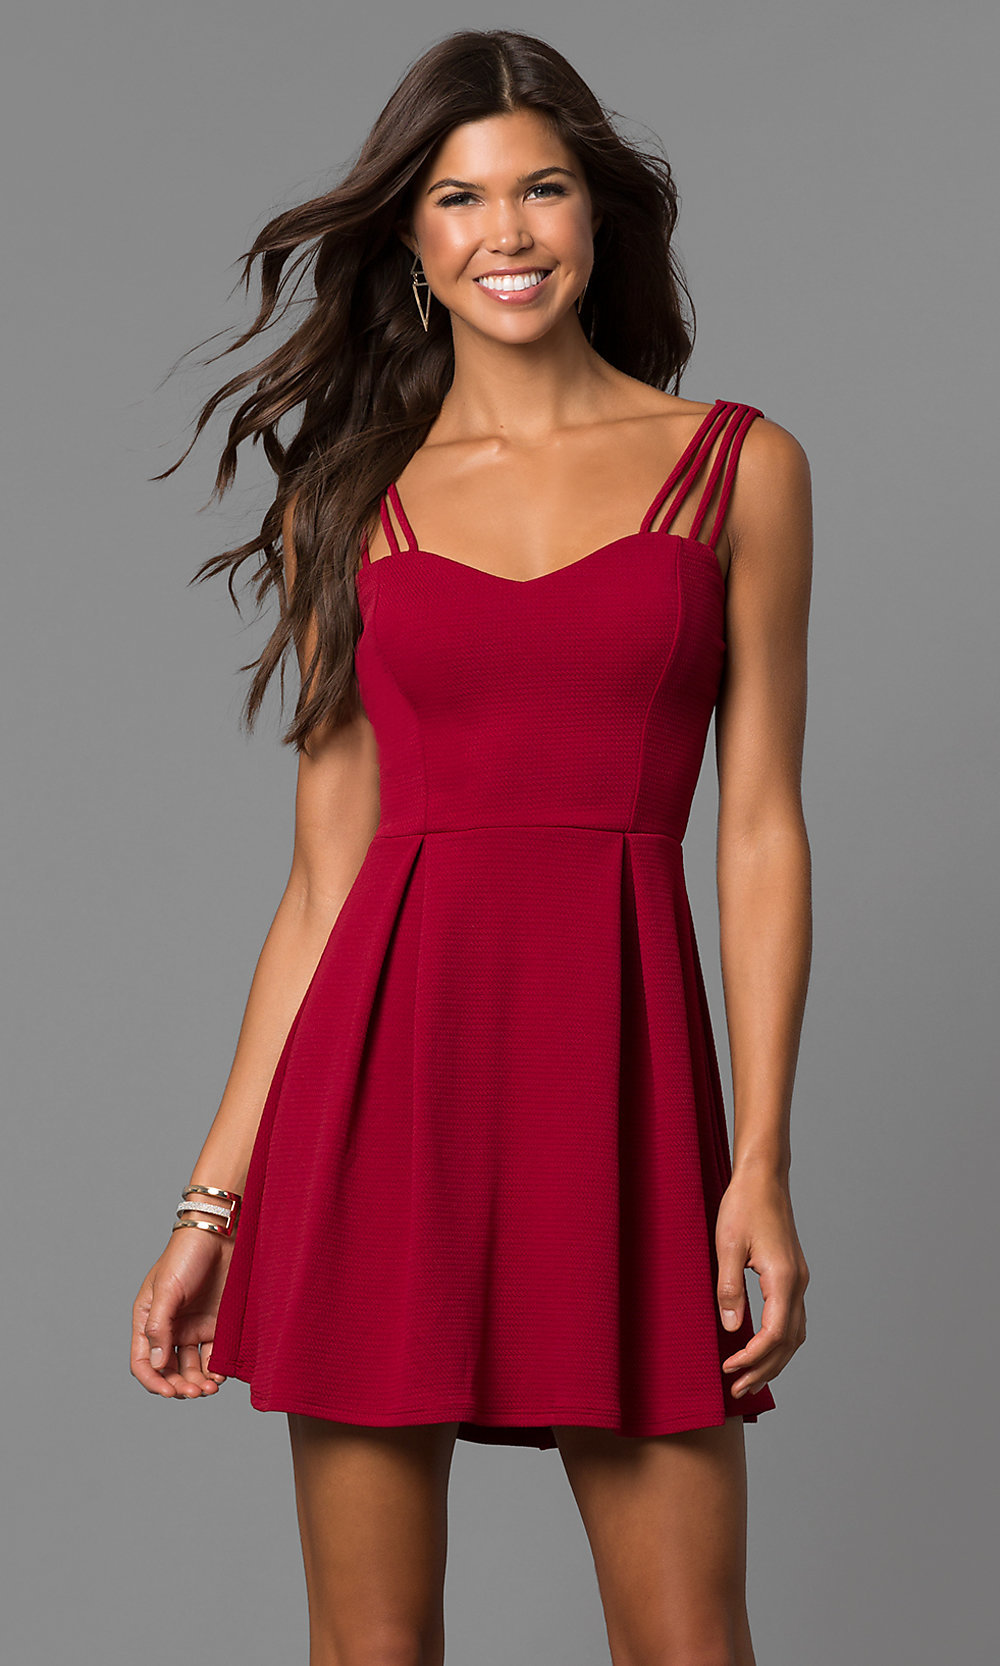 Sleeveless Summer Casual Dress - PromGirl